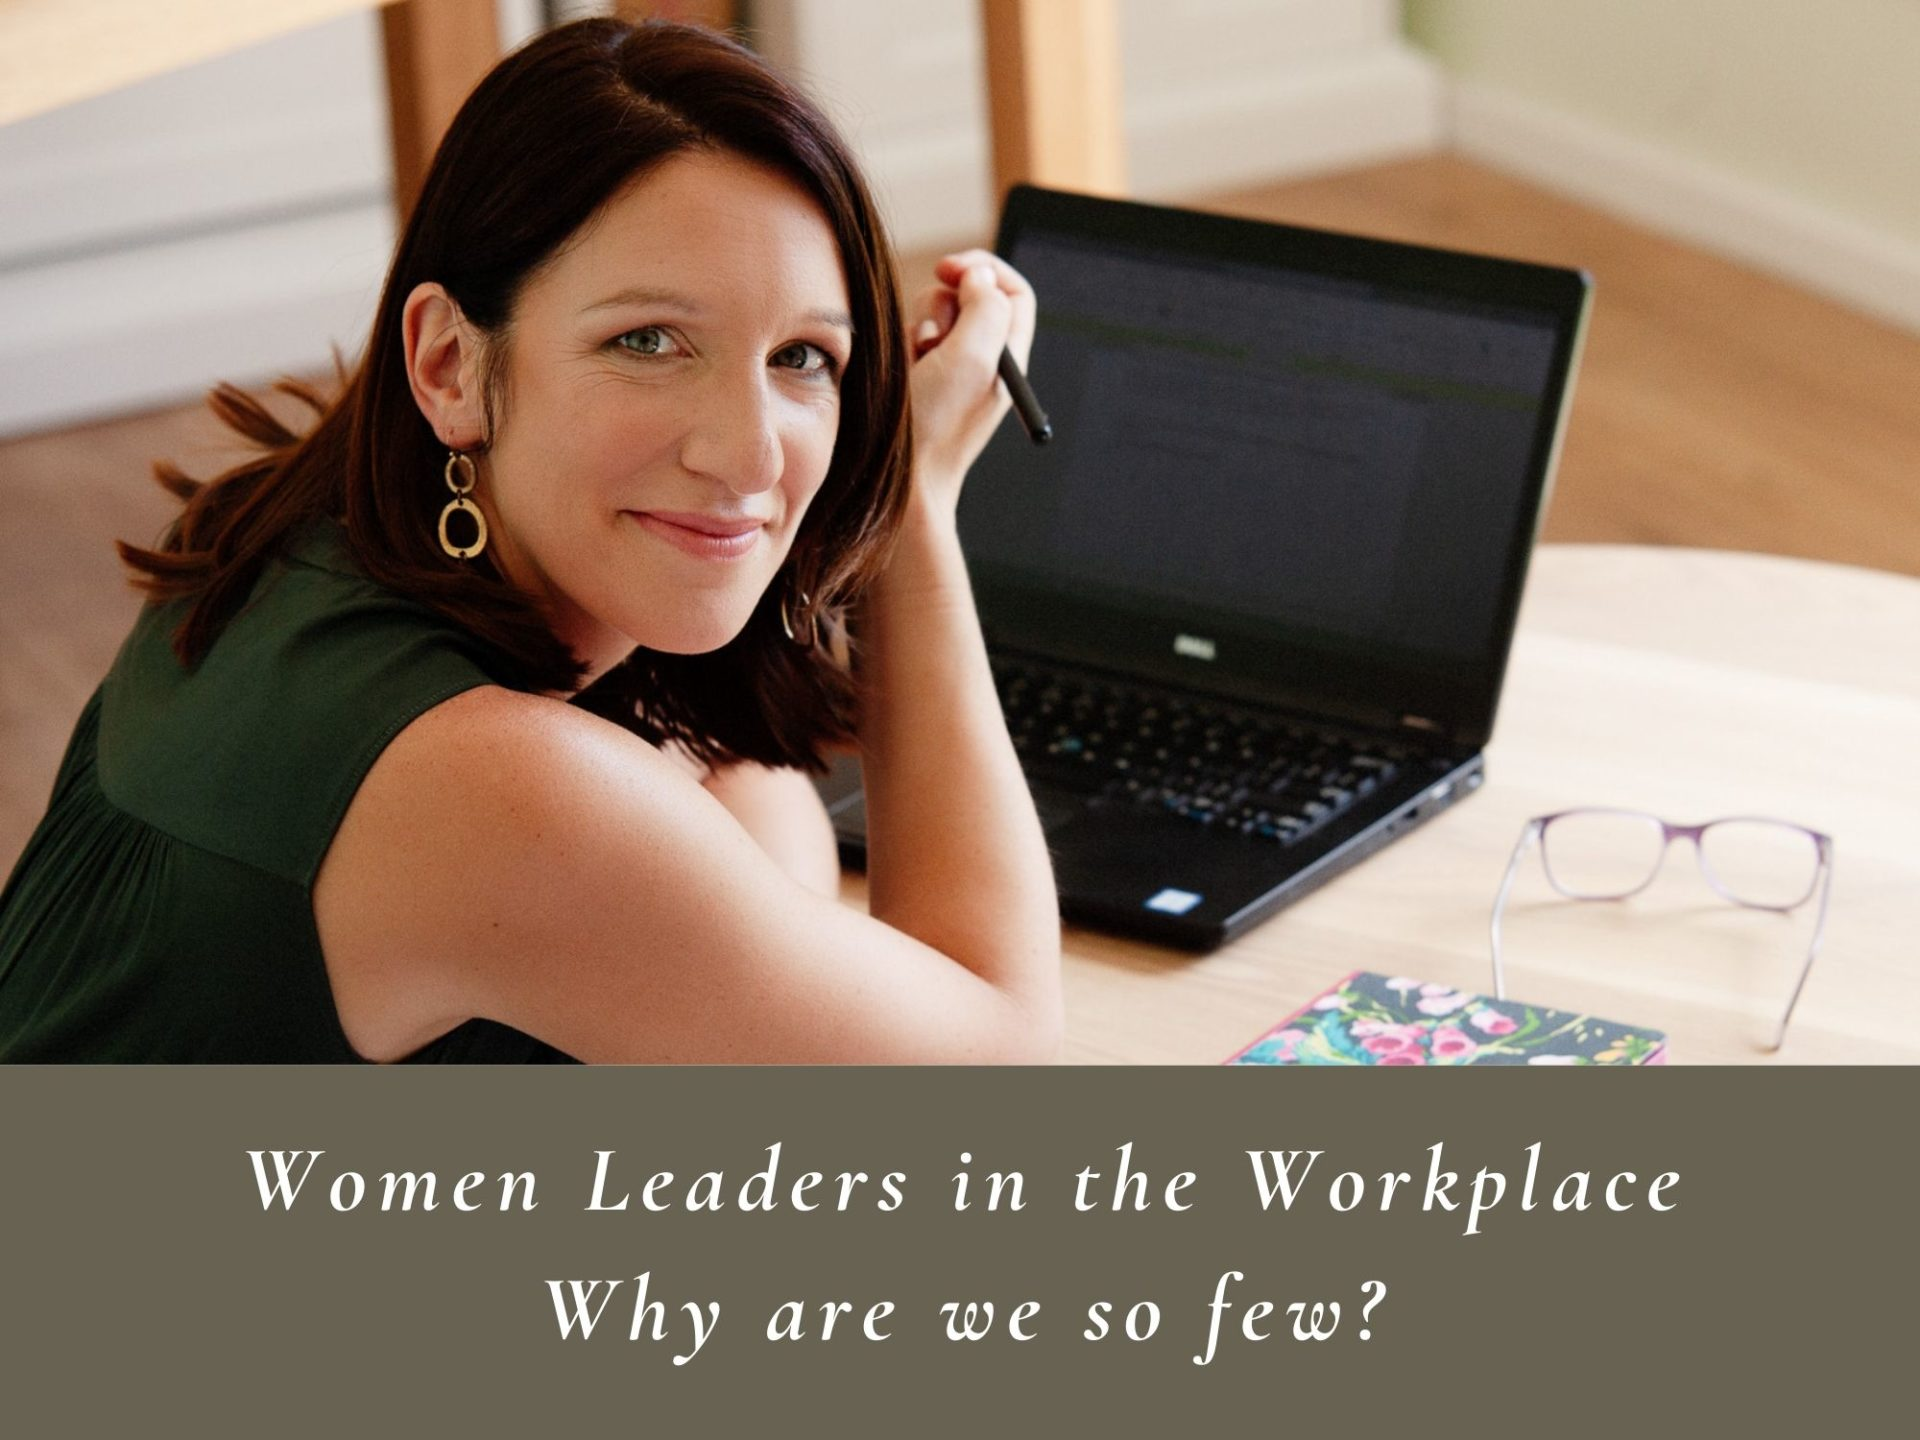 women leaders in the workplace